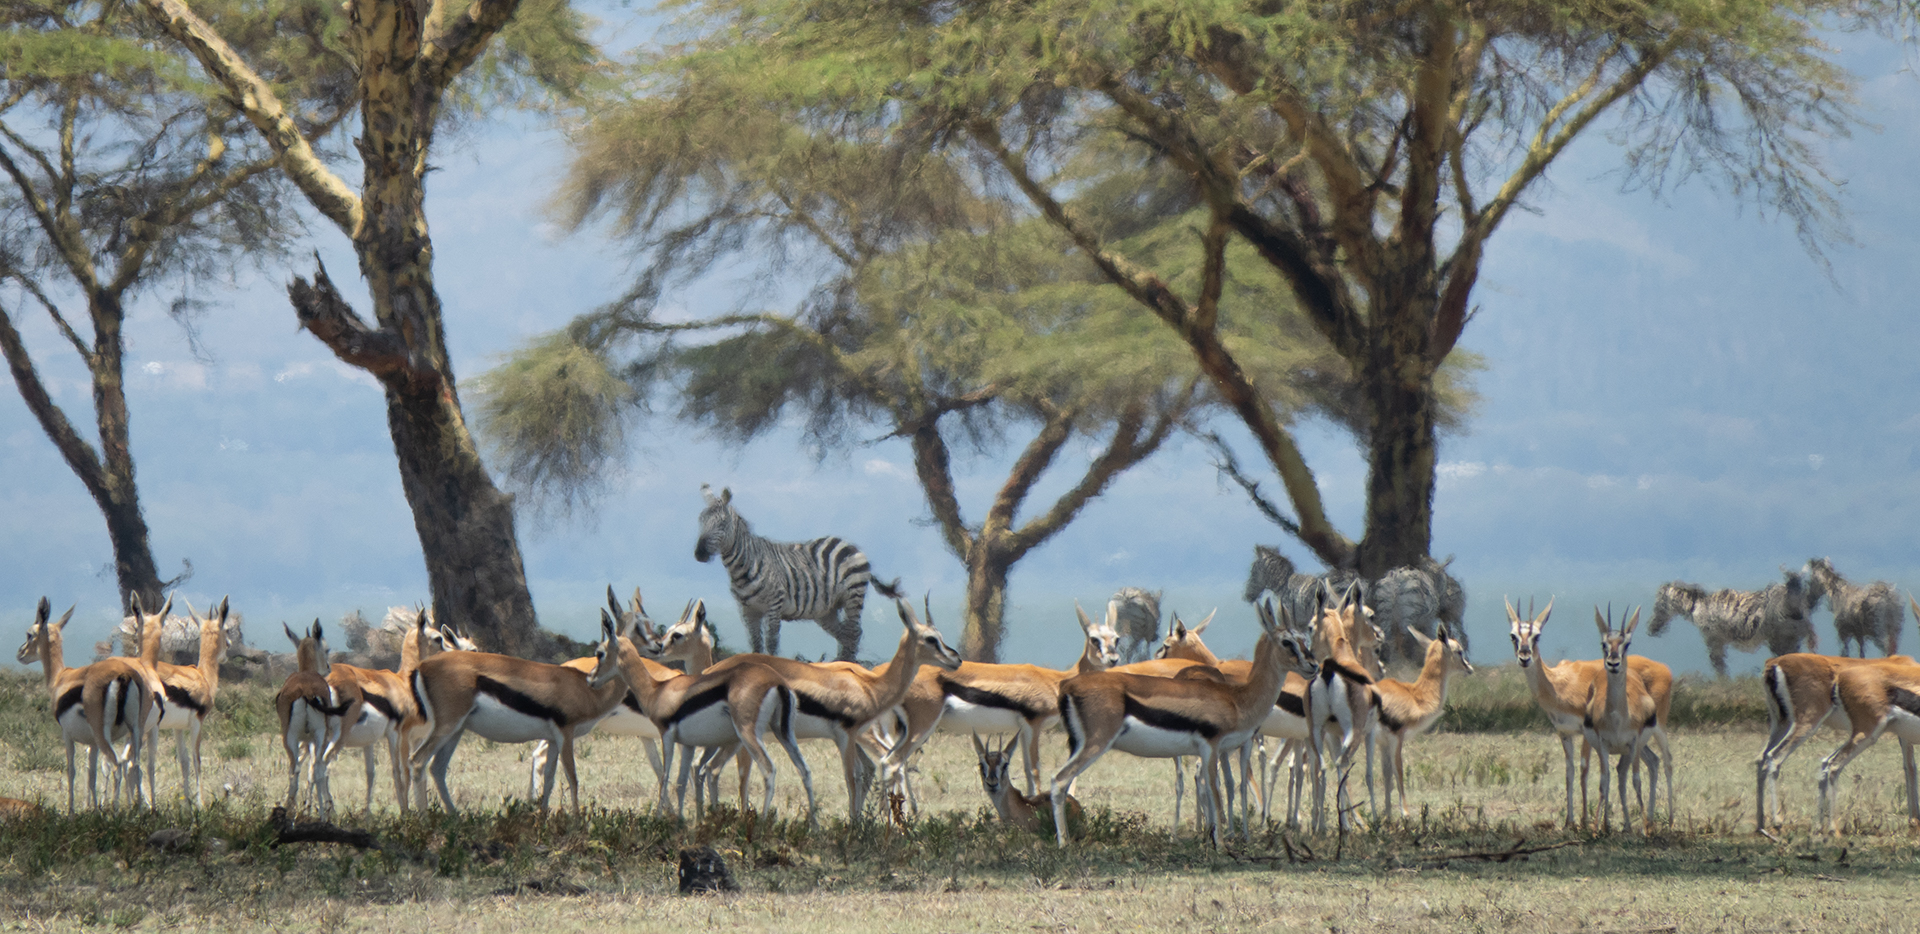 More Gazelles And Zebras